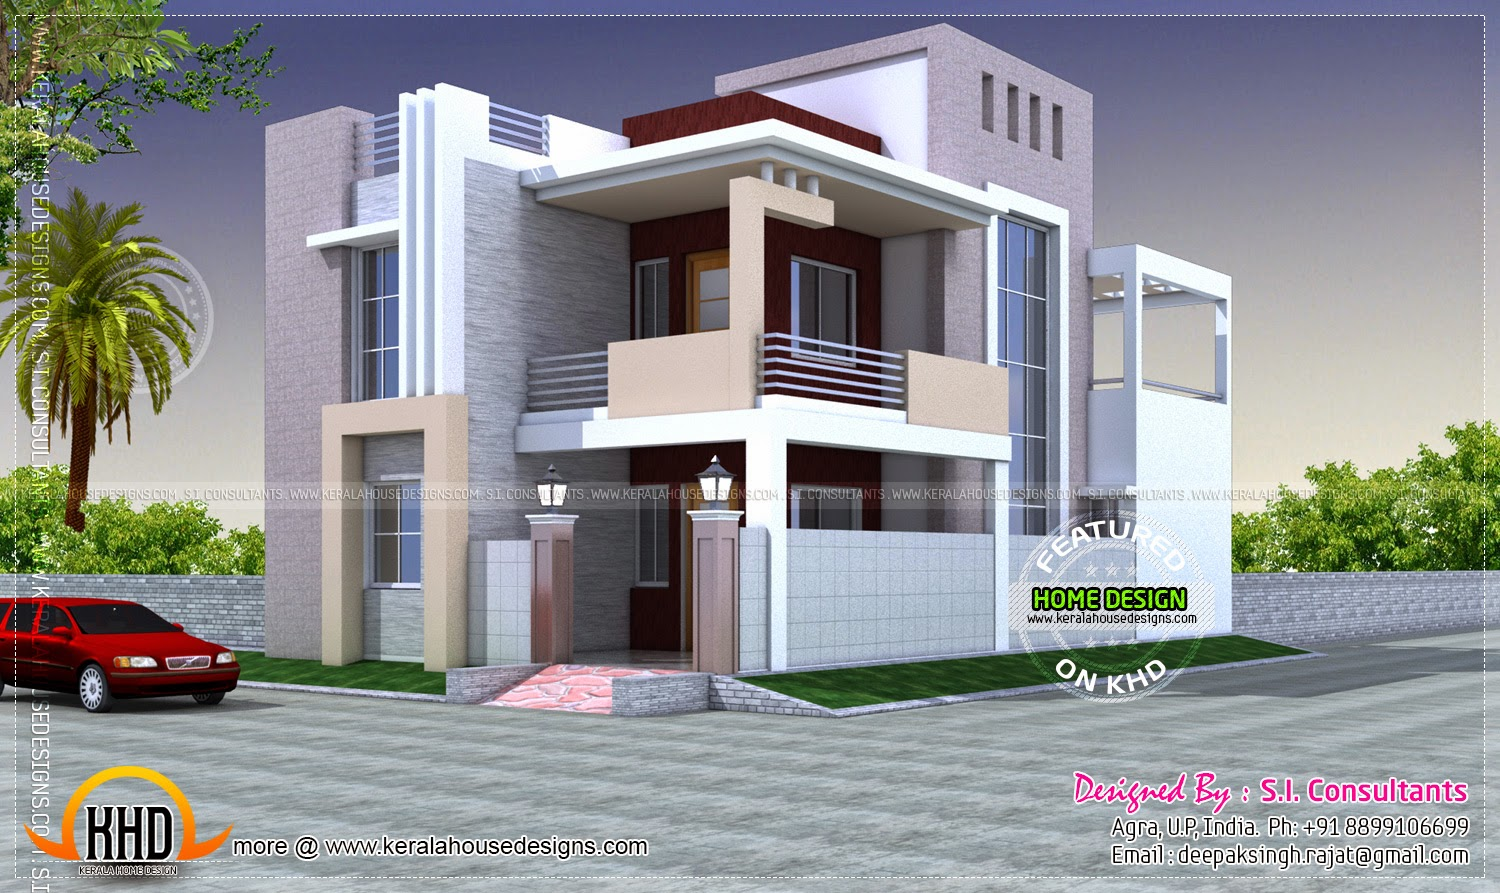 House exterior elevation modern style kerala home design for Indian home exterior designs